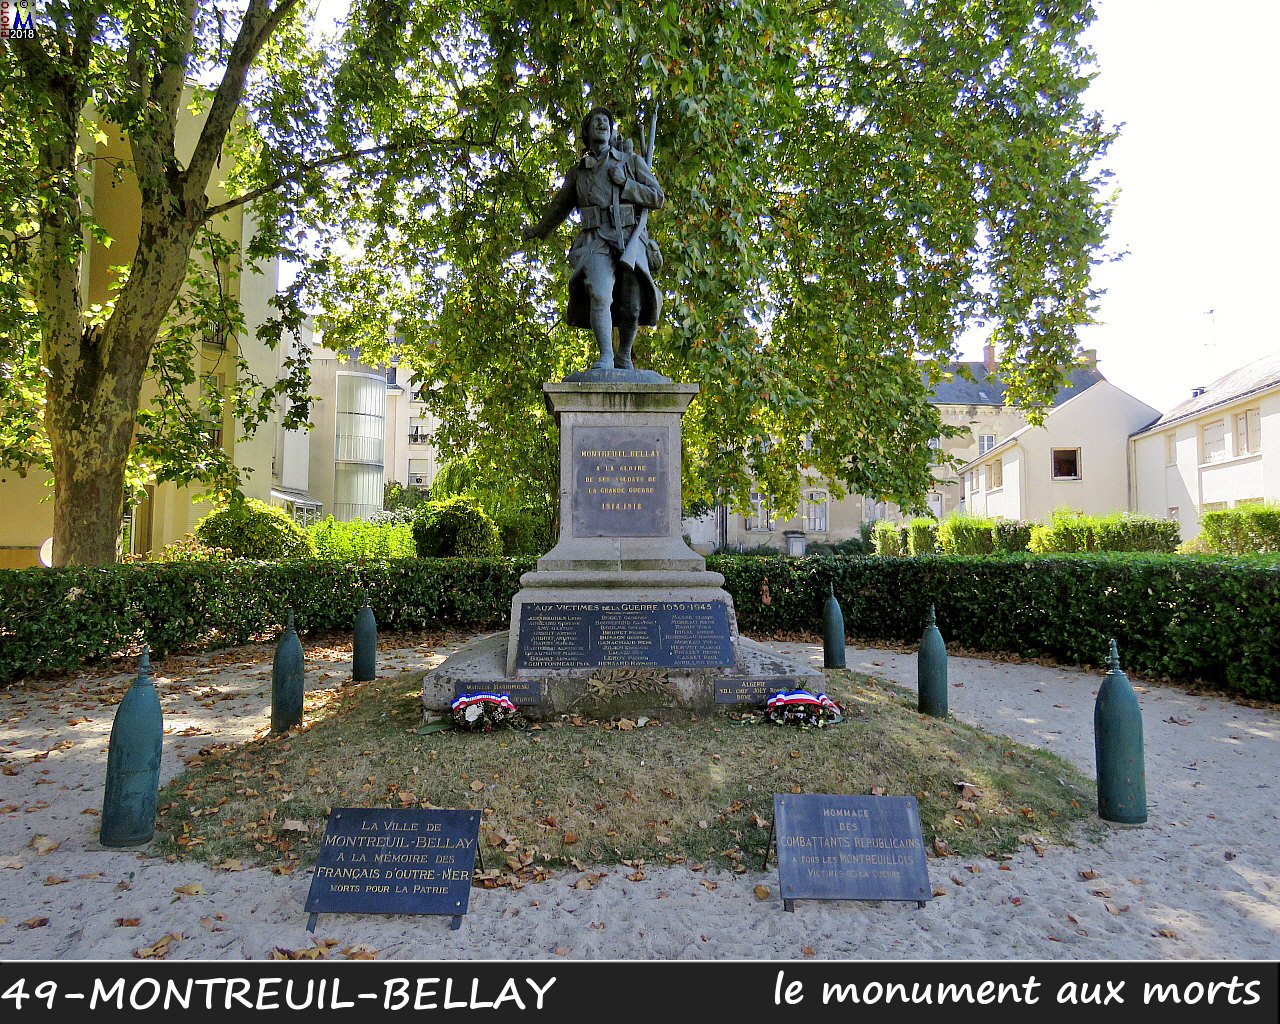 49MONTREUIL-BELLAY_morts_1000.jpg